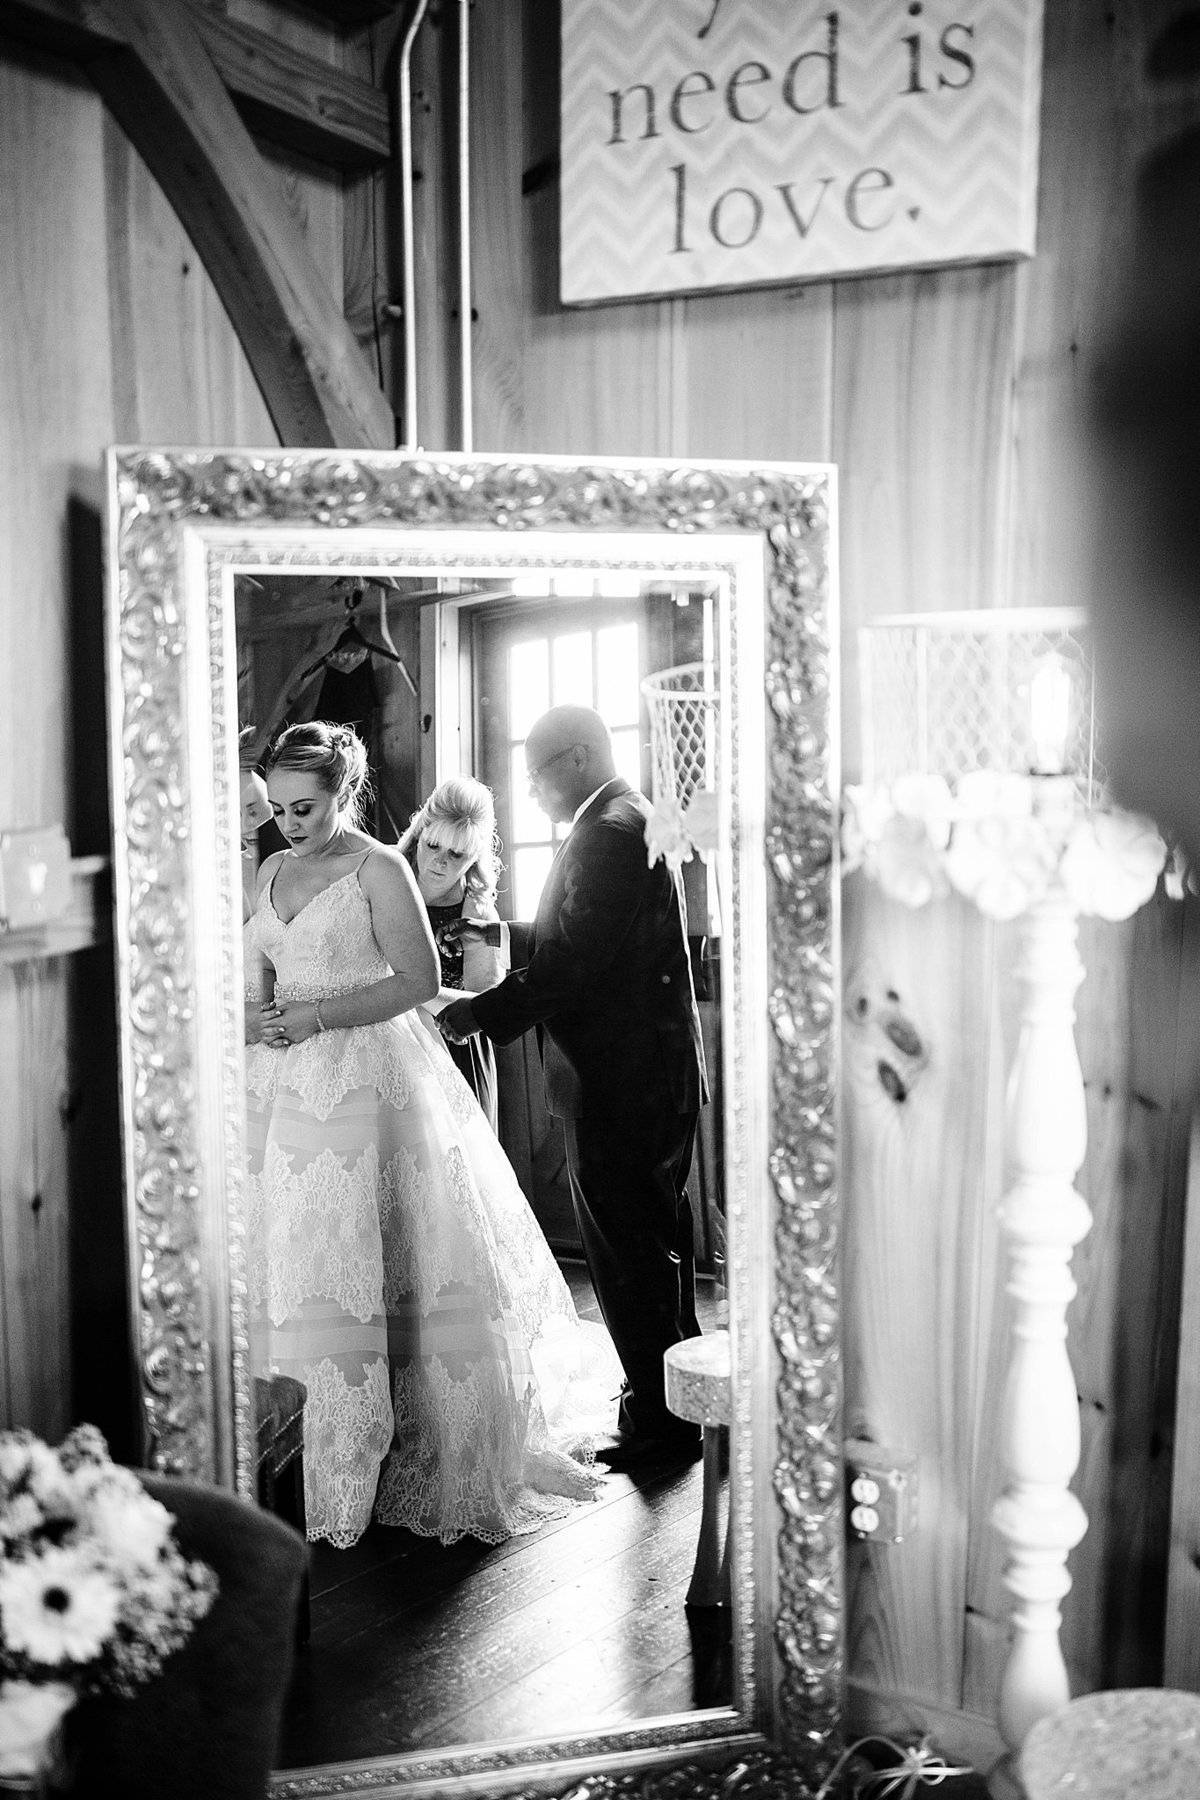 spring-wedding-thousand-acre-farm-delaware-rebecca-renner-photography_0019